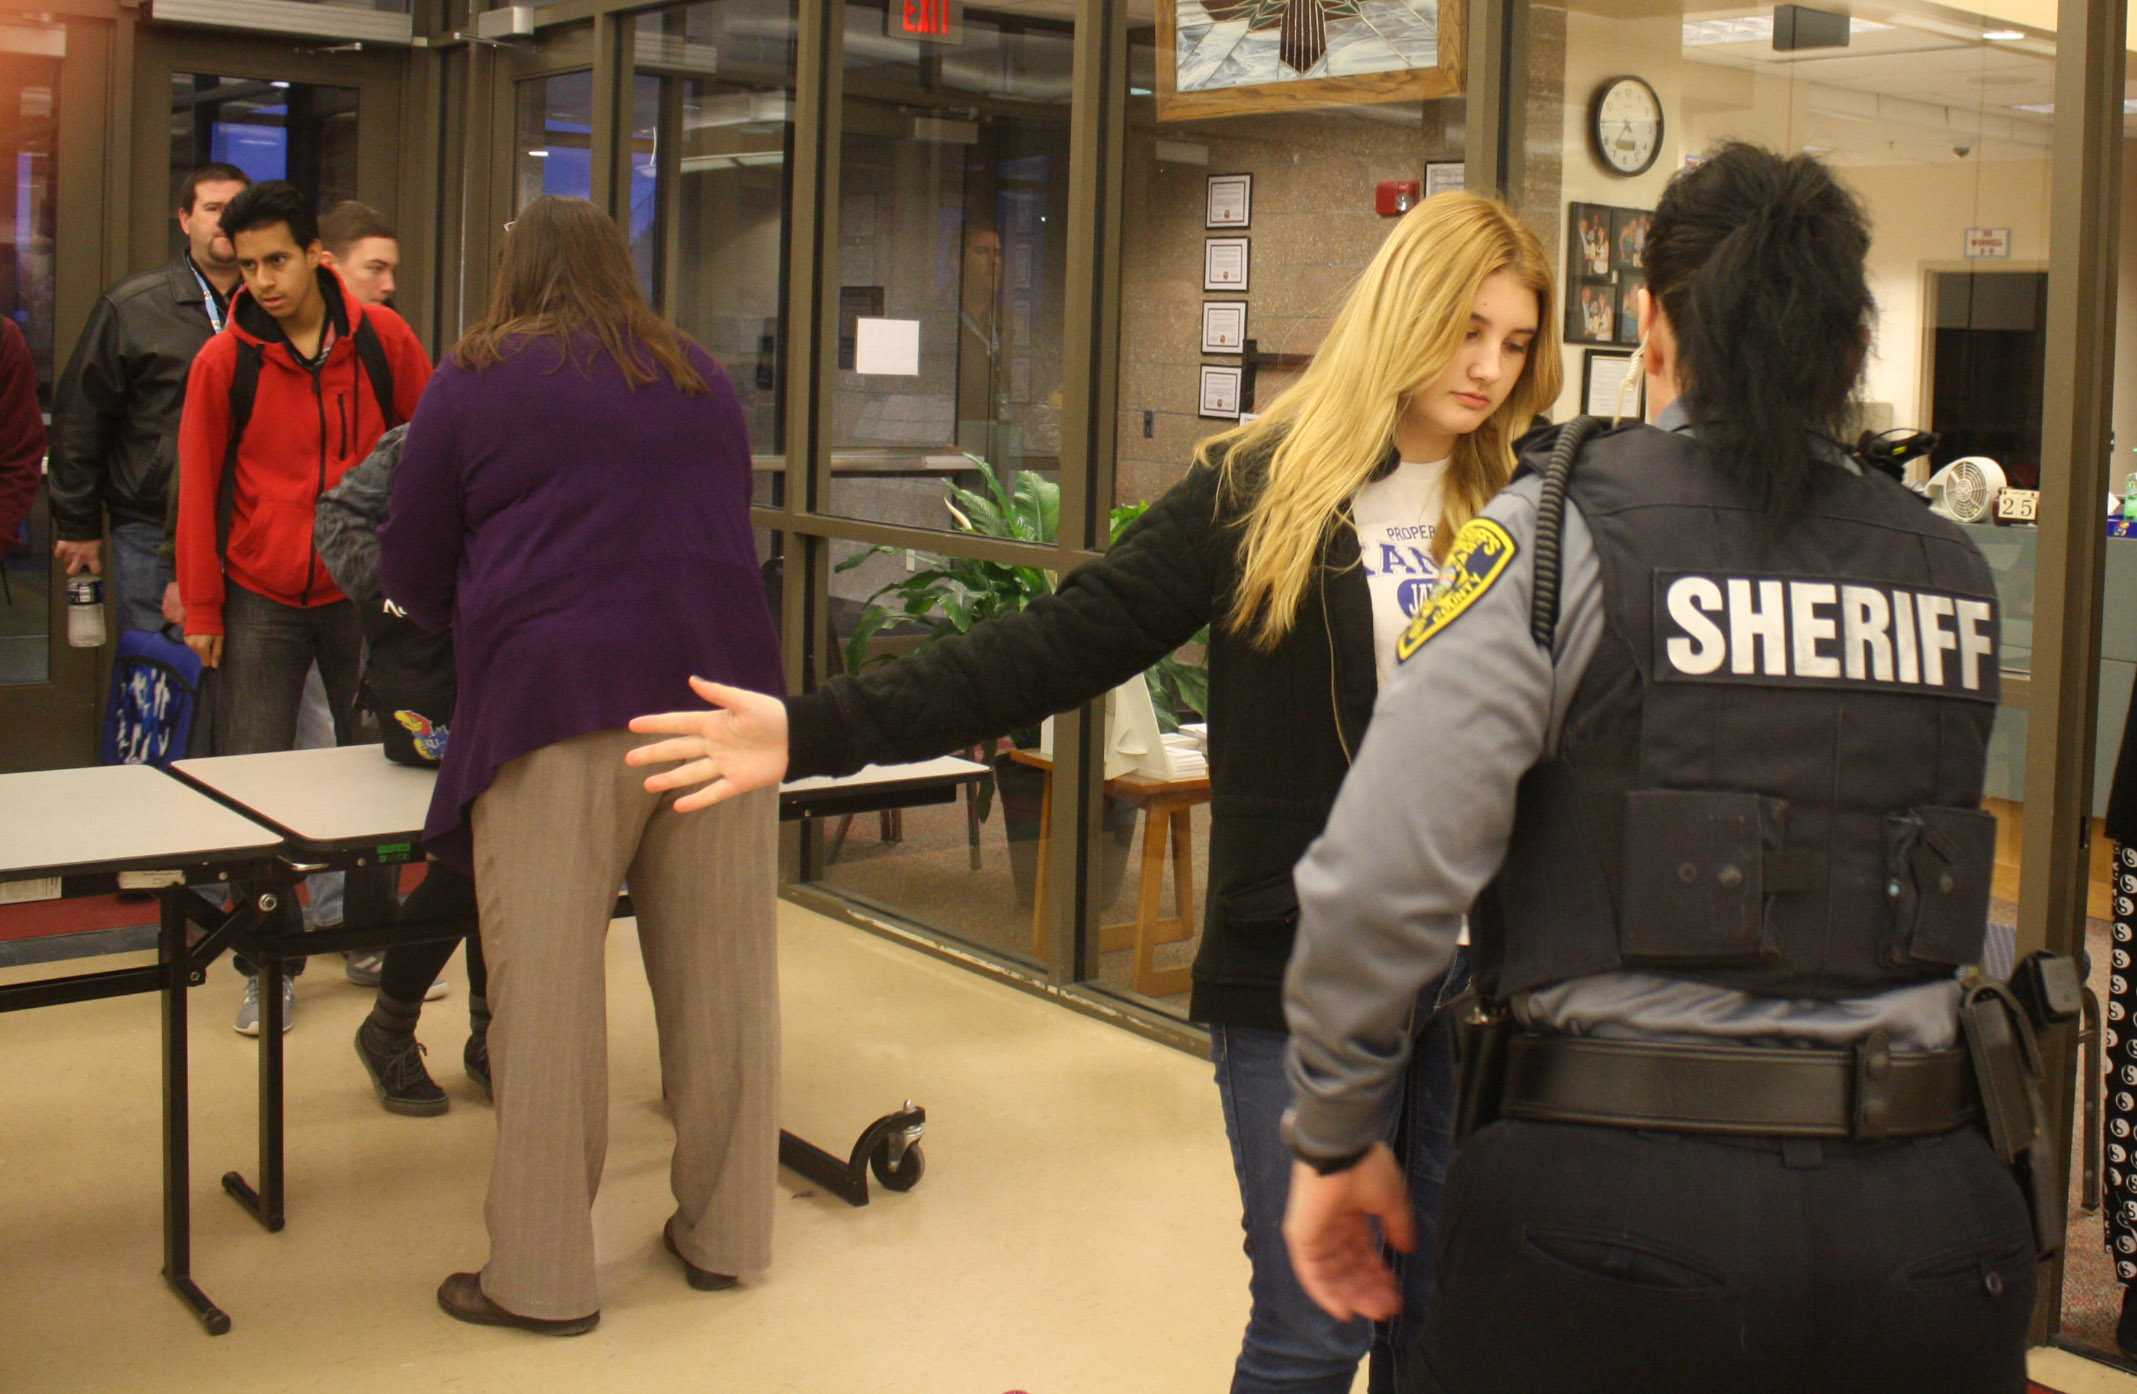 Security welcomed students as they returned to school on Tuesday 26, after being assured the students and faculty were safe, school continued as normal.